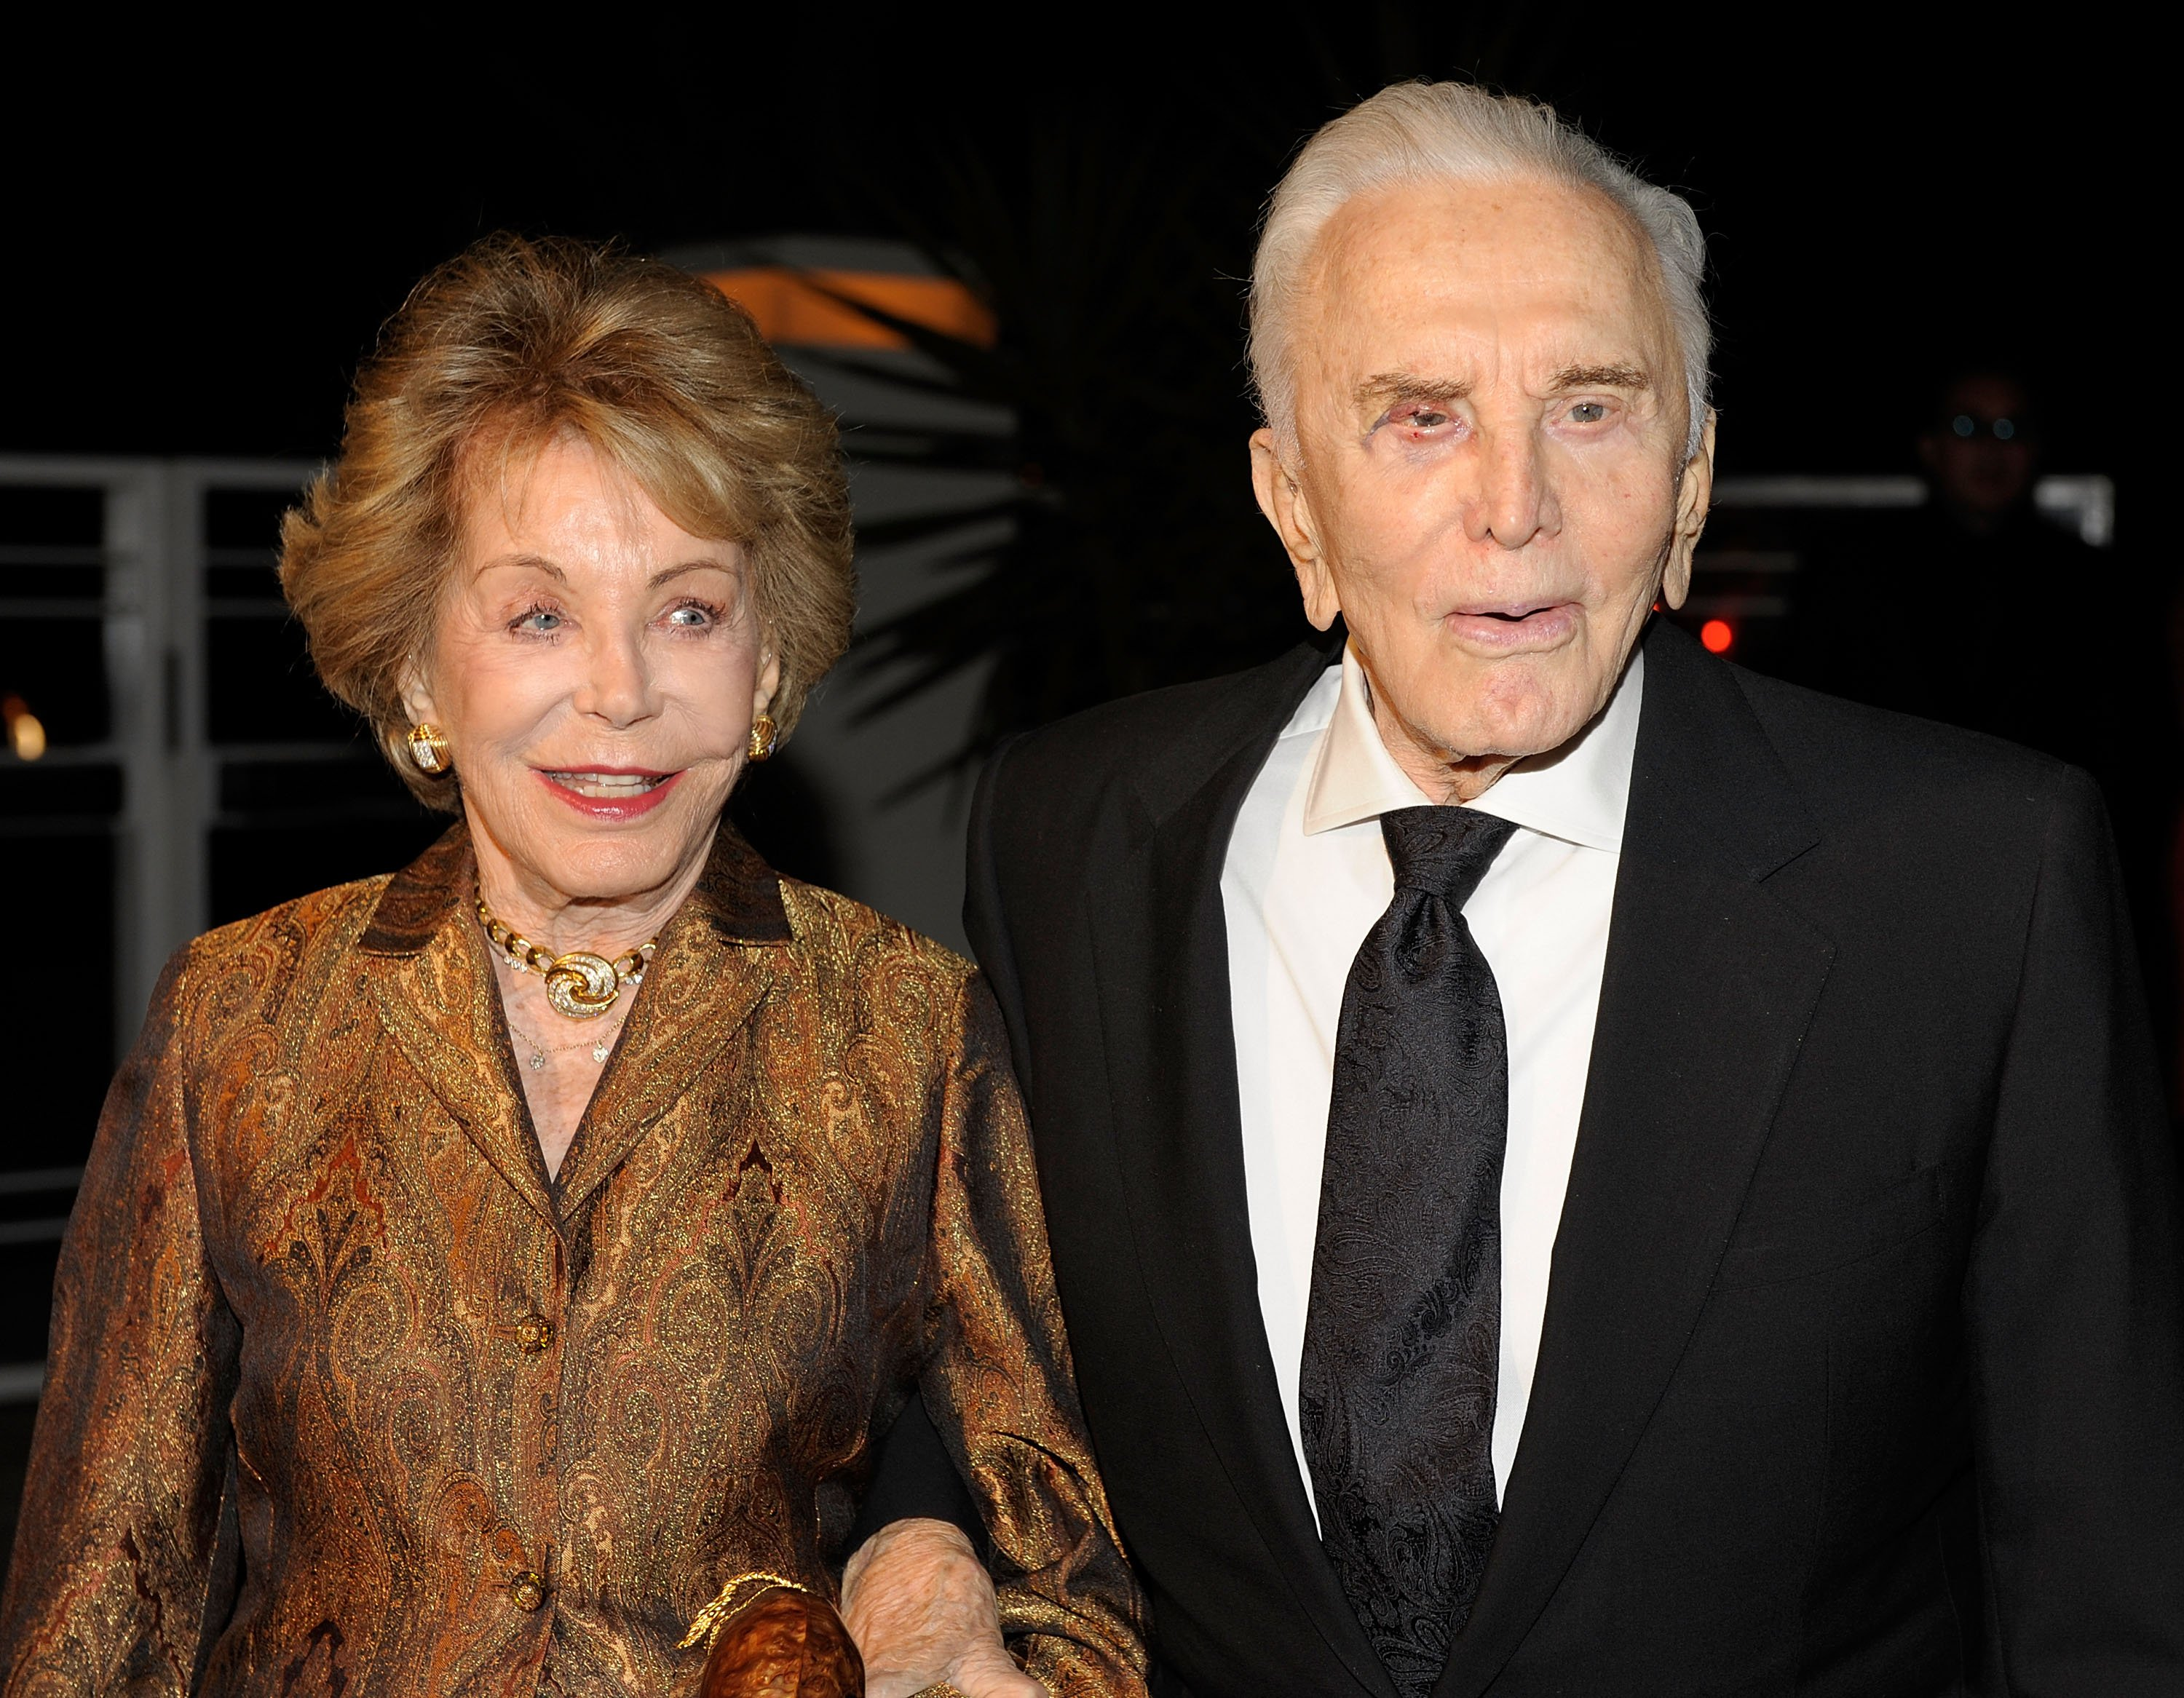 Anne Buydens y Kirk Douglas en un evento. l Foto: Getty Images